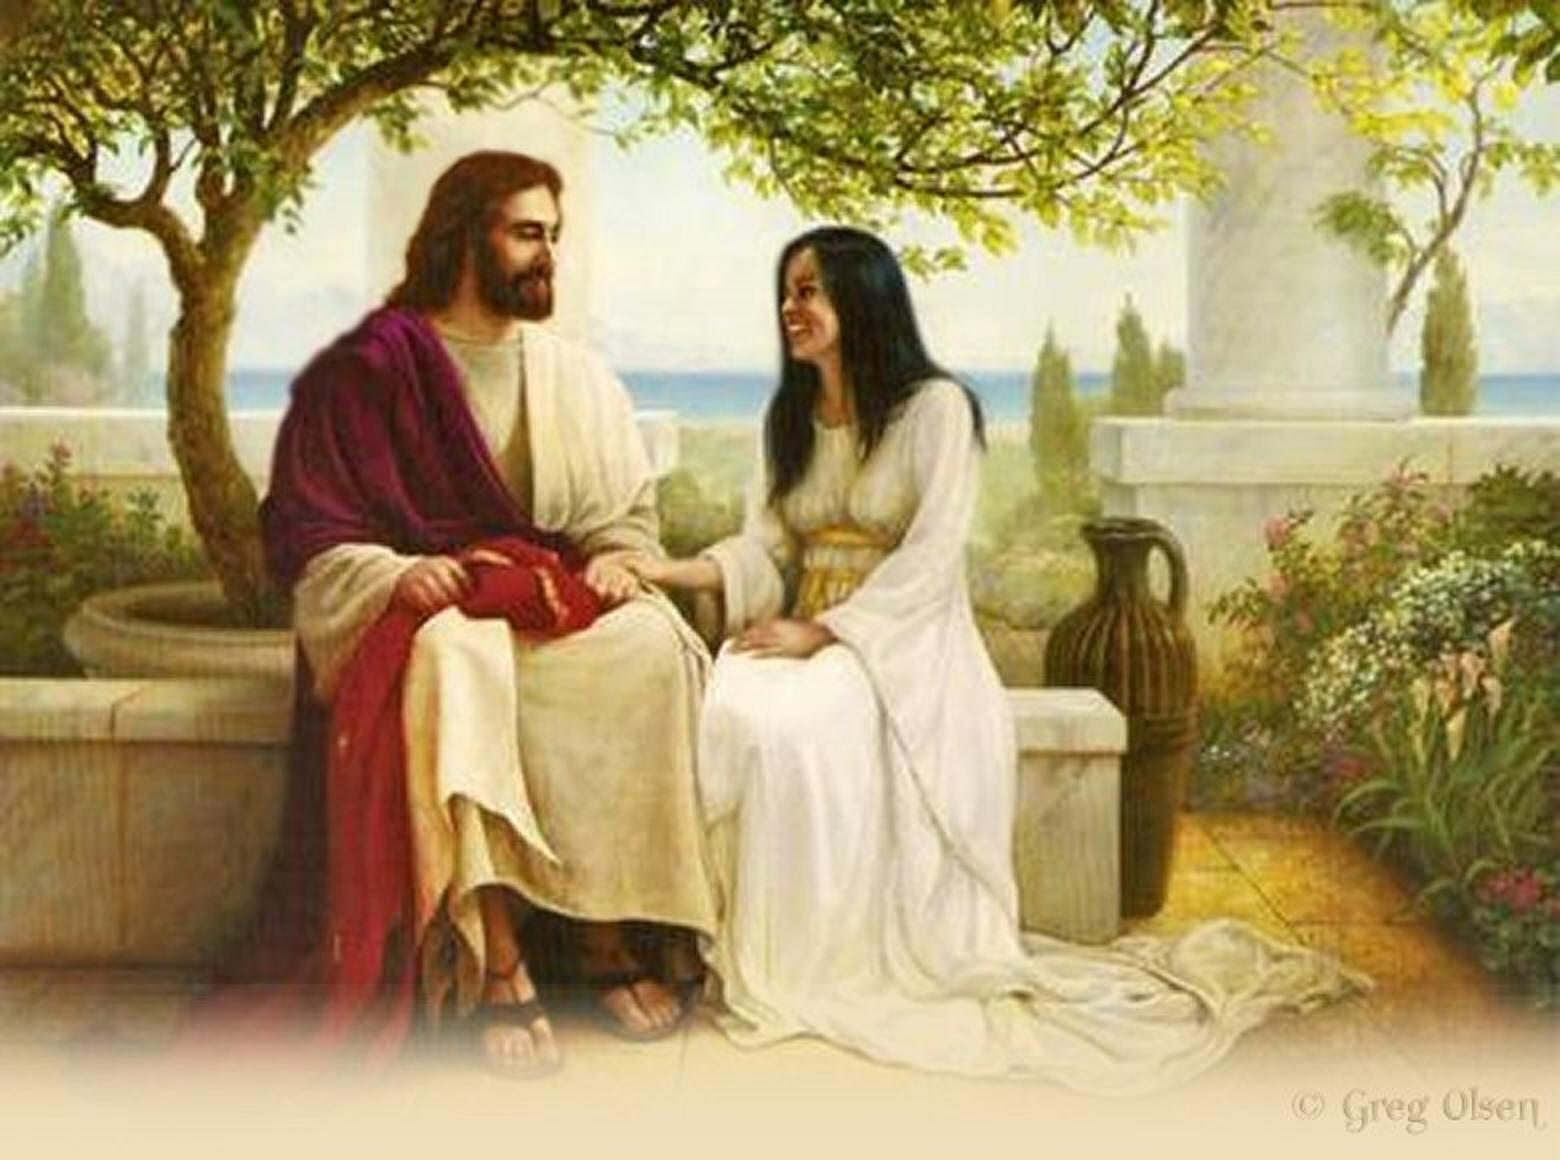 deceit and sexual womens sexual sins Deceit and sexual women's sexual sins  will argue that the severity of condemnation in hell for women's sexual sins is related to the increasing degrees of deceit.